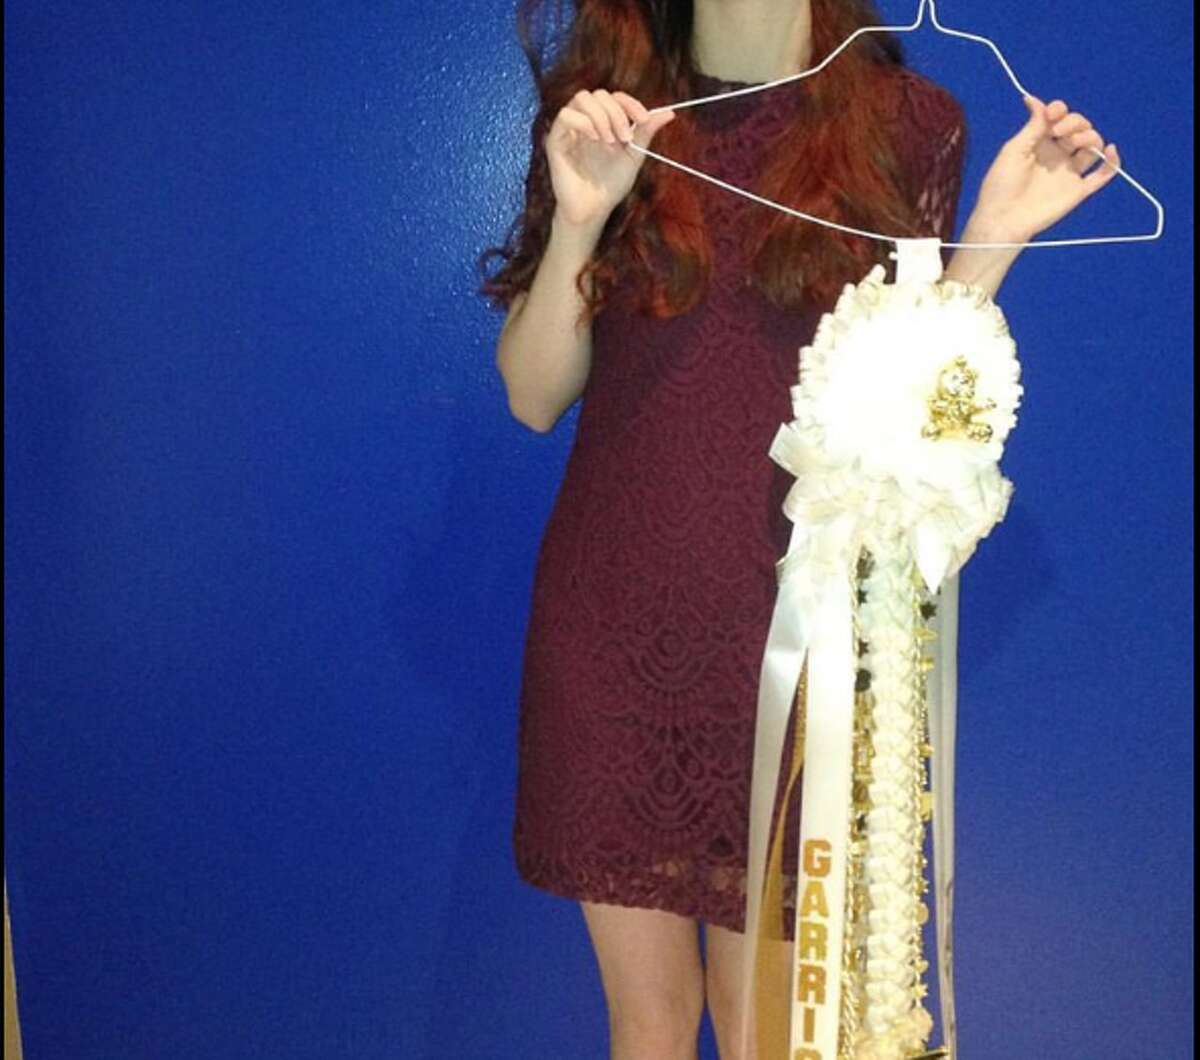 A student in Pearland wasn't allowed to wear this dress to Homecoming because the hemline was more than 3 inches above her knee.